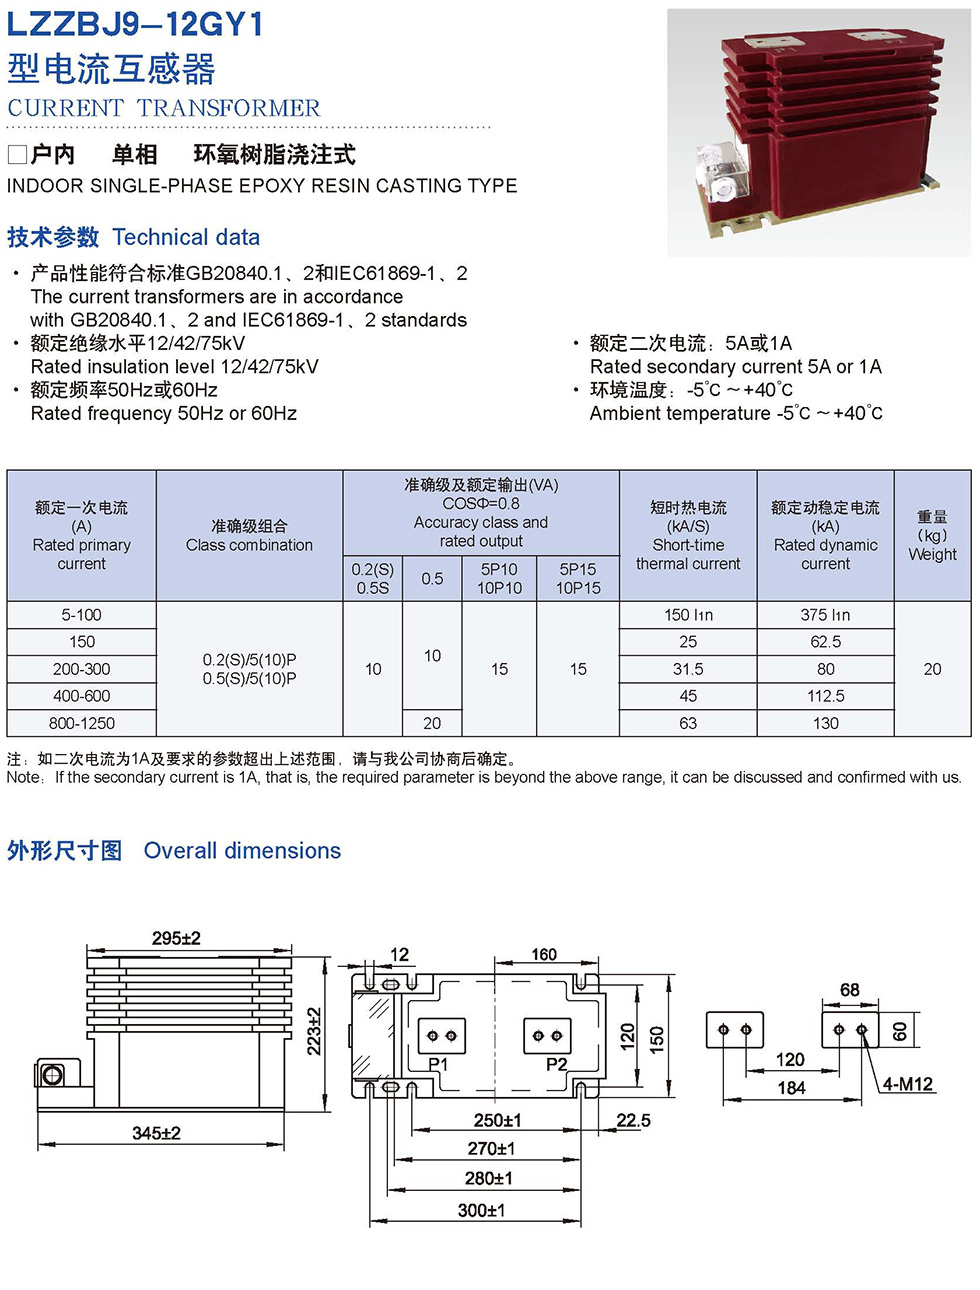 LZZBJ9-12GY1 Transformer Products